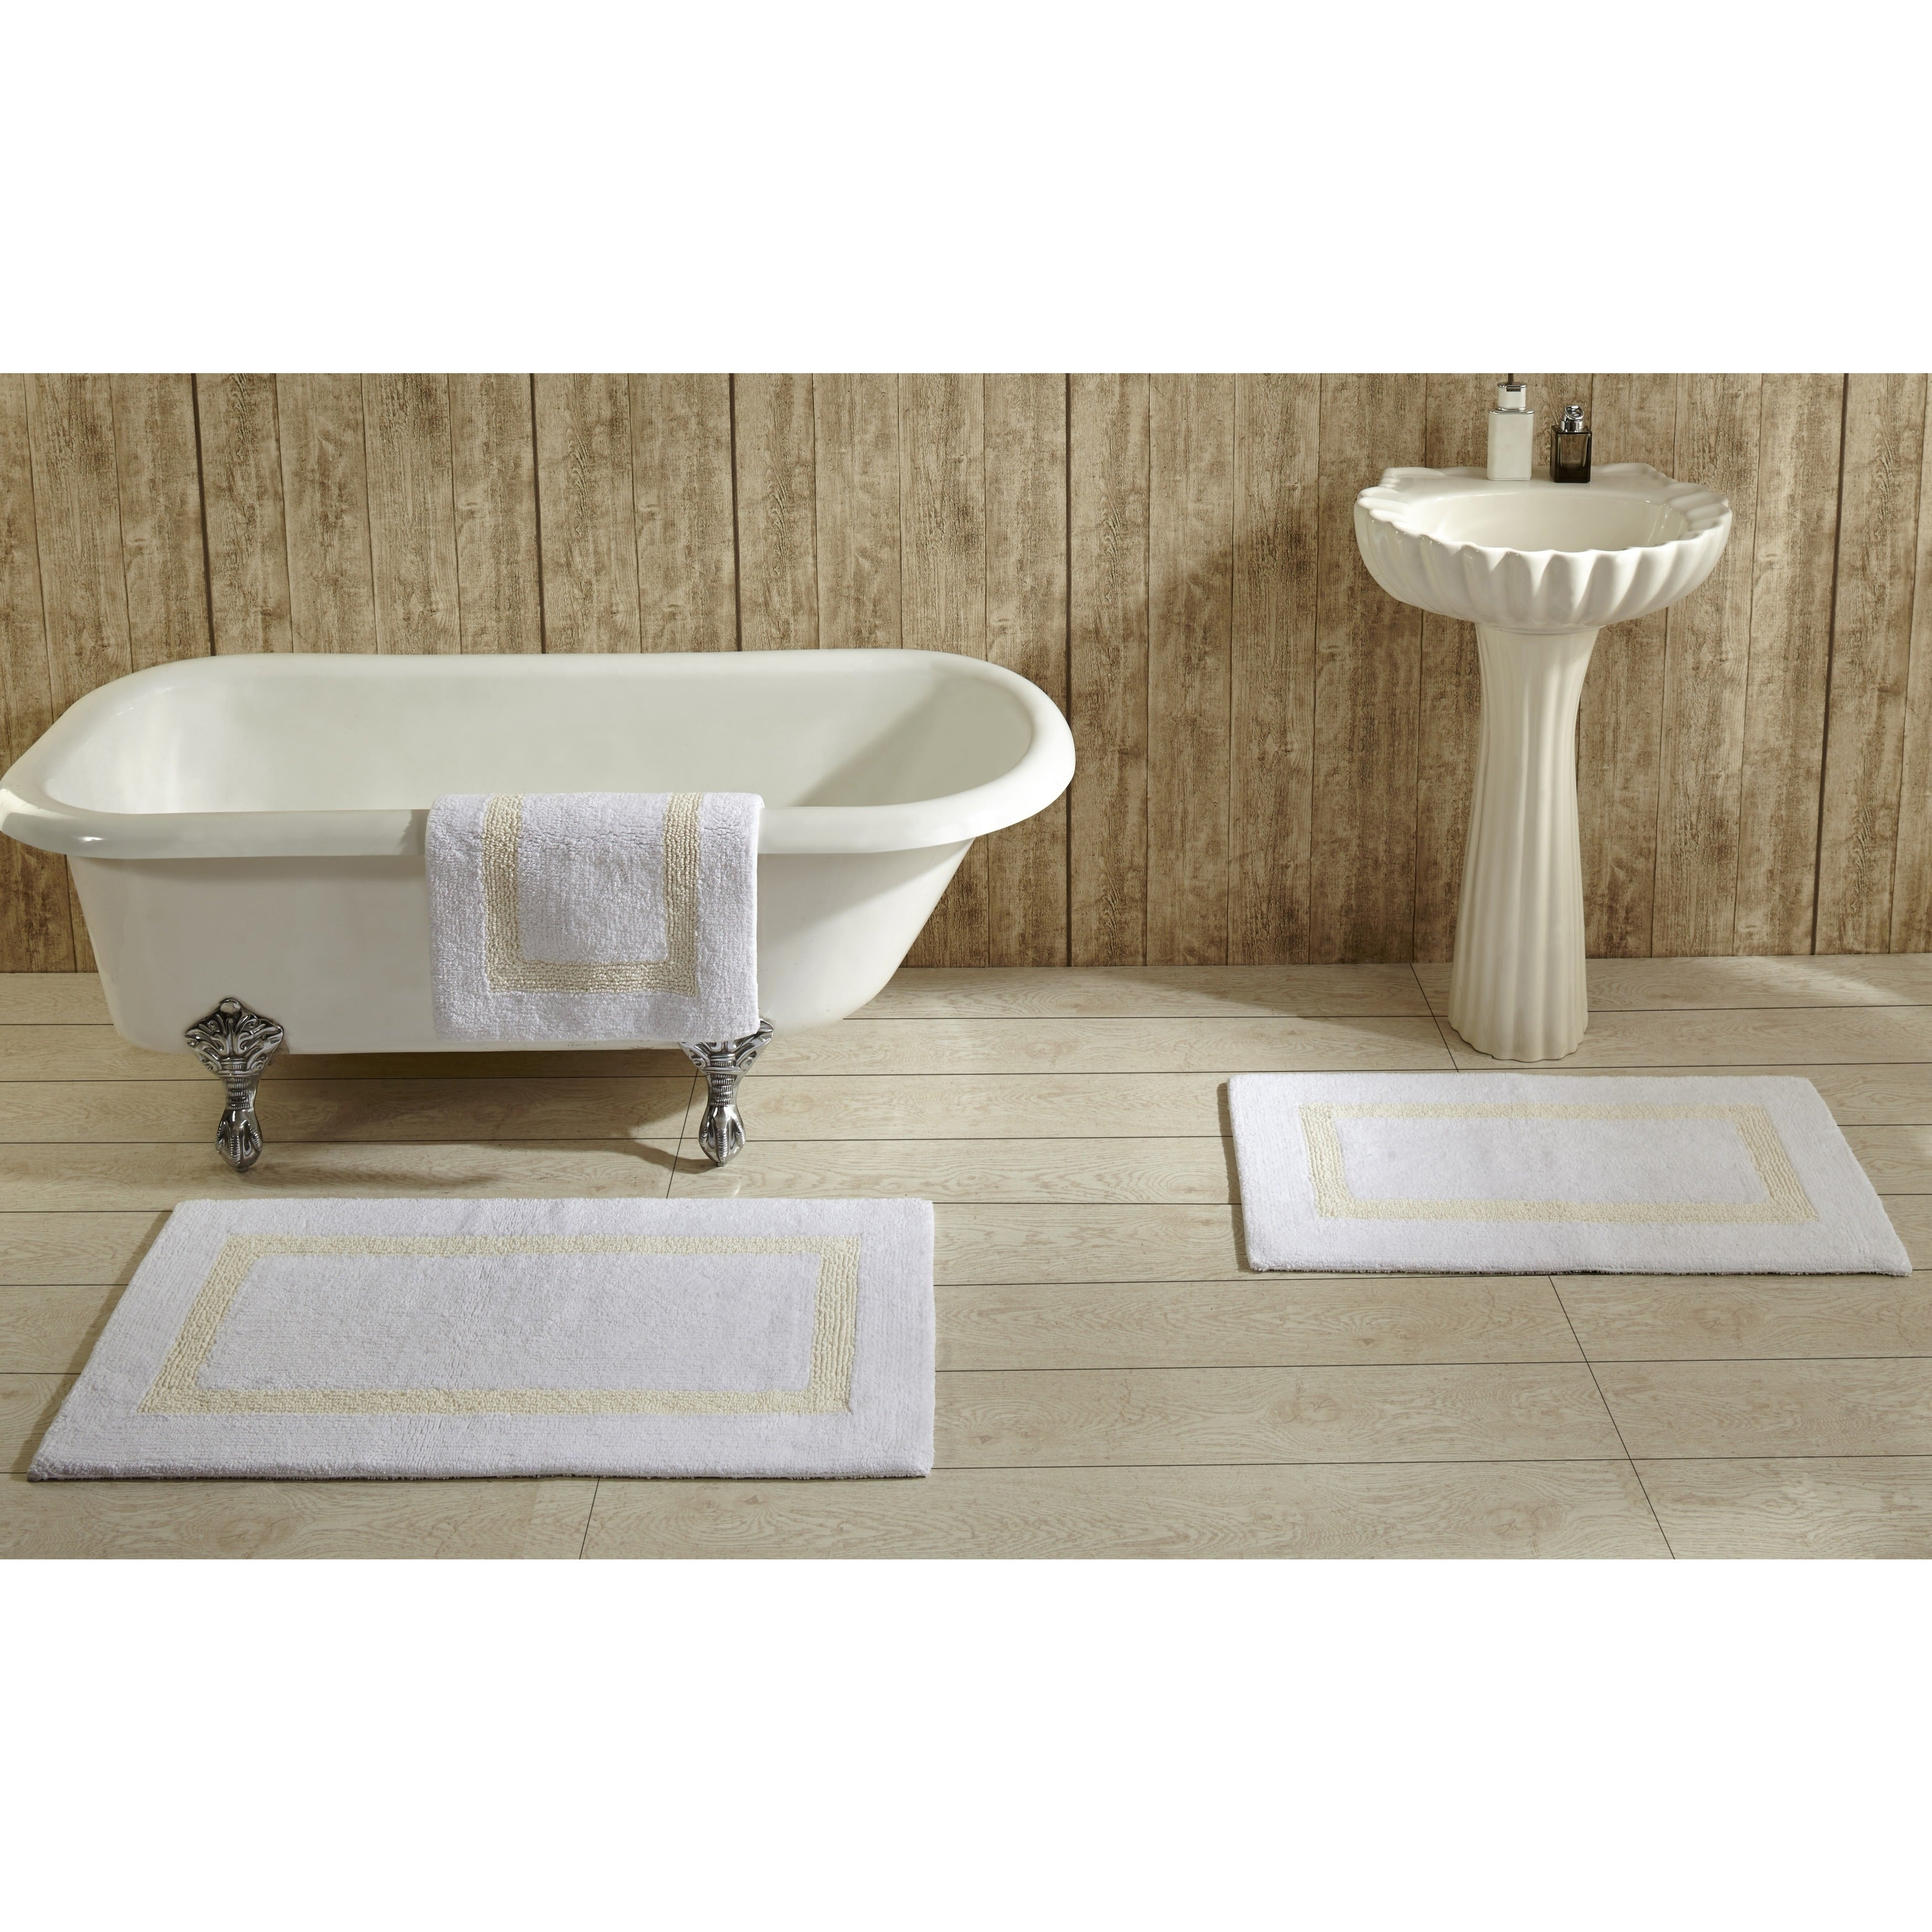 Hotel Collection Cotton Reversible Luxury Bath Rug By Better Trends On Free Shipping Orders Over 45 8873491